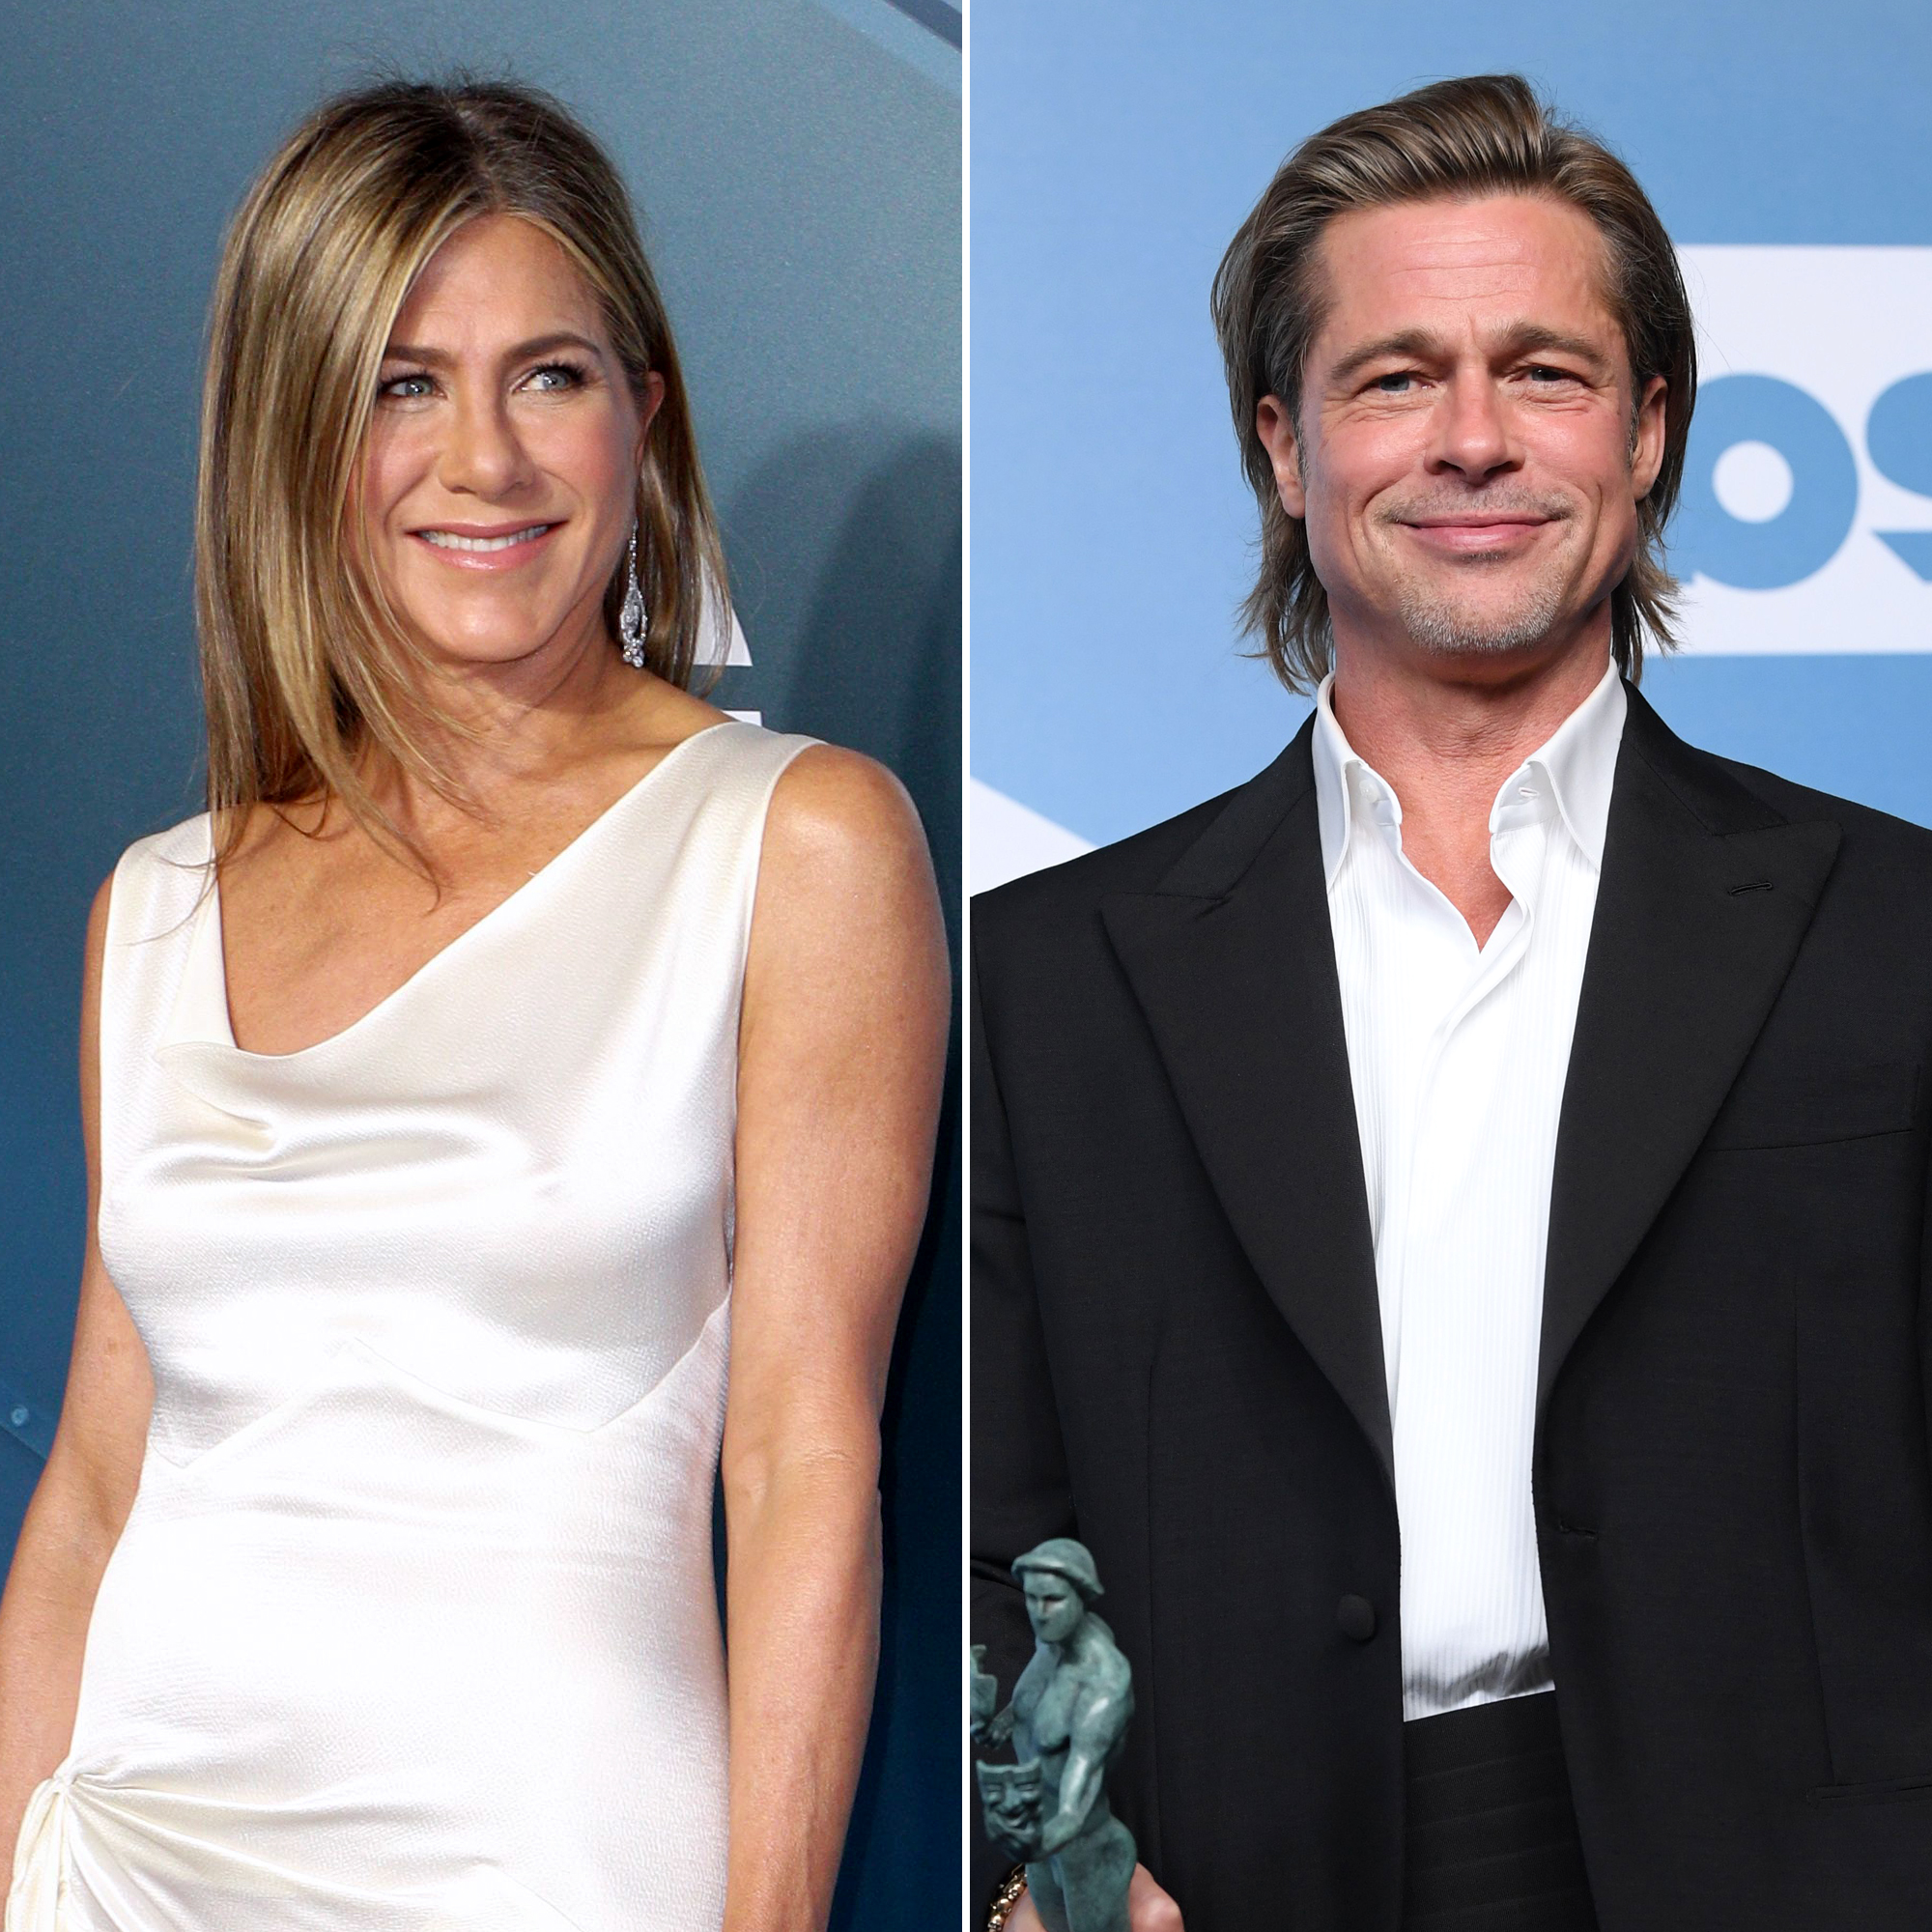 Jennifer Aniston Says Brad Pitt Is Welcome To Join The Morning Show